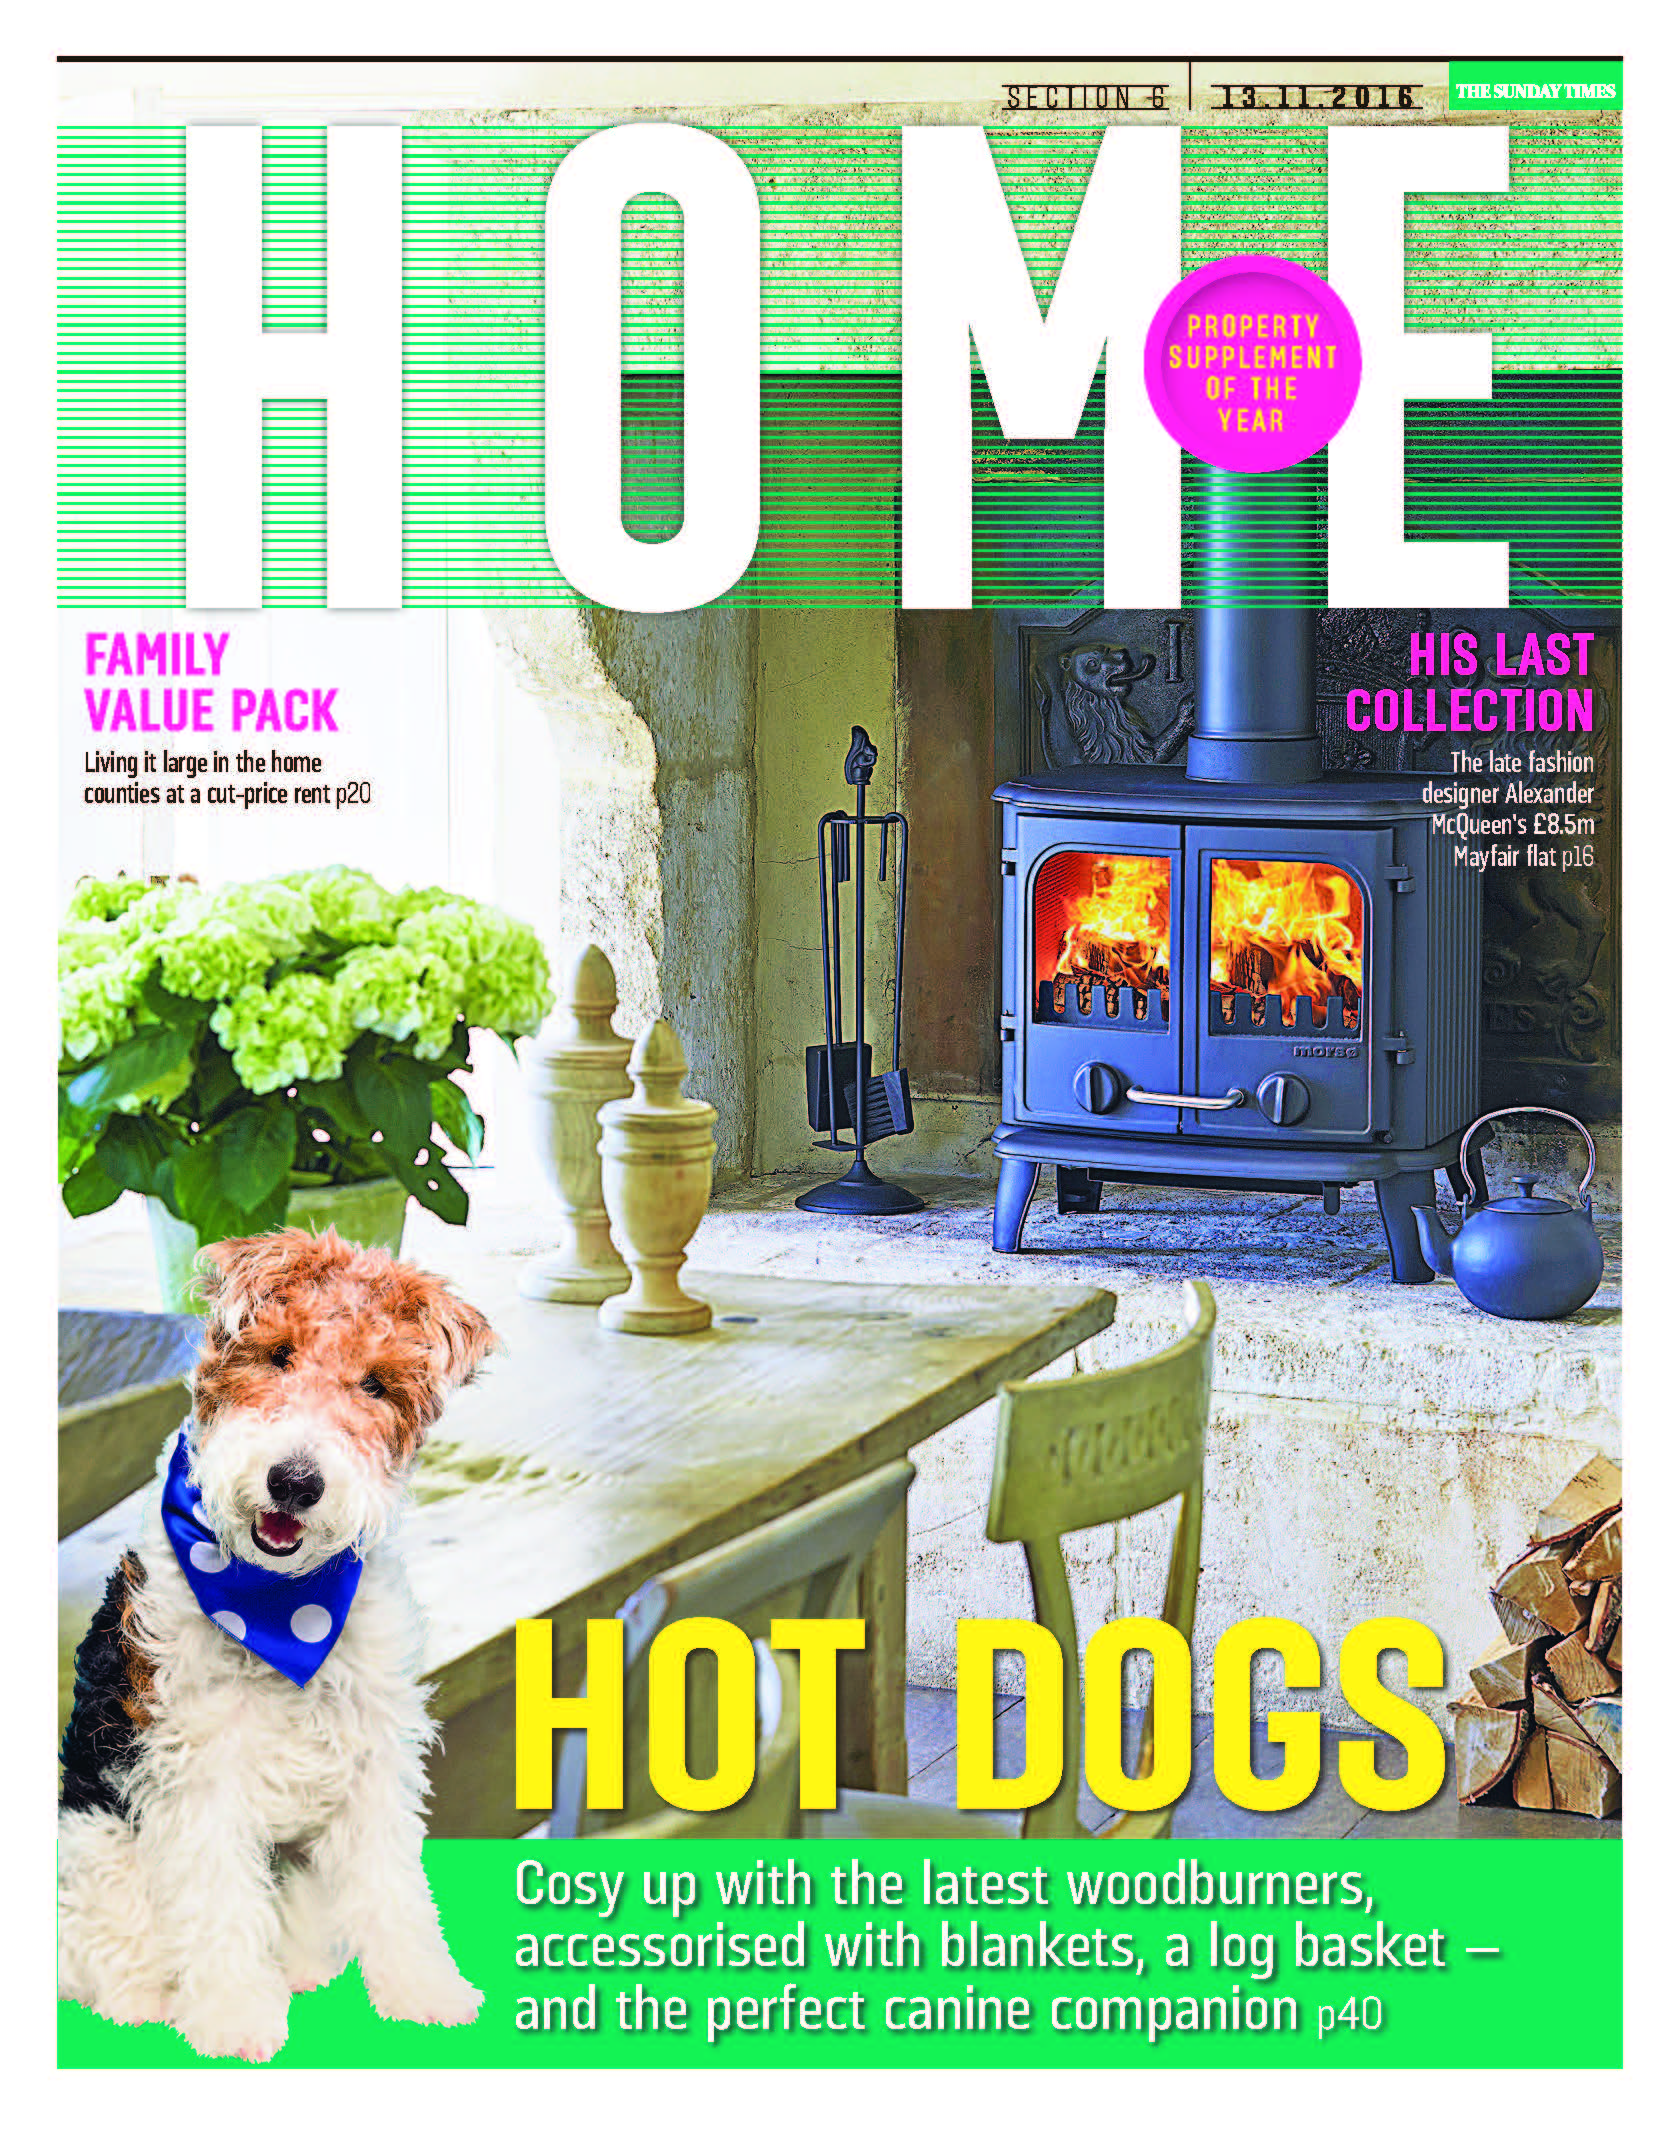 dog, dogs, style, magazine, press, editorial, home, hot, dogs, furnace